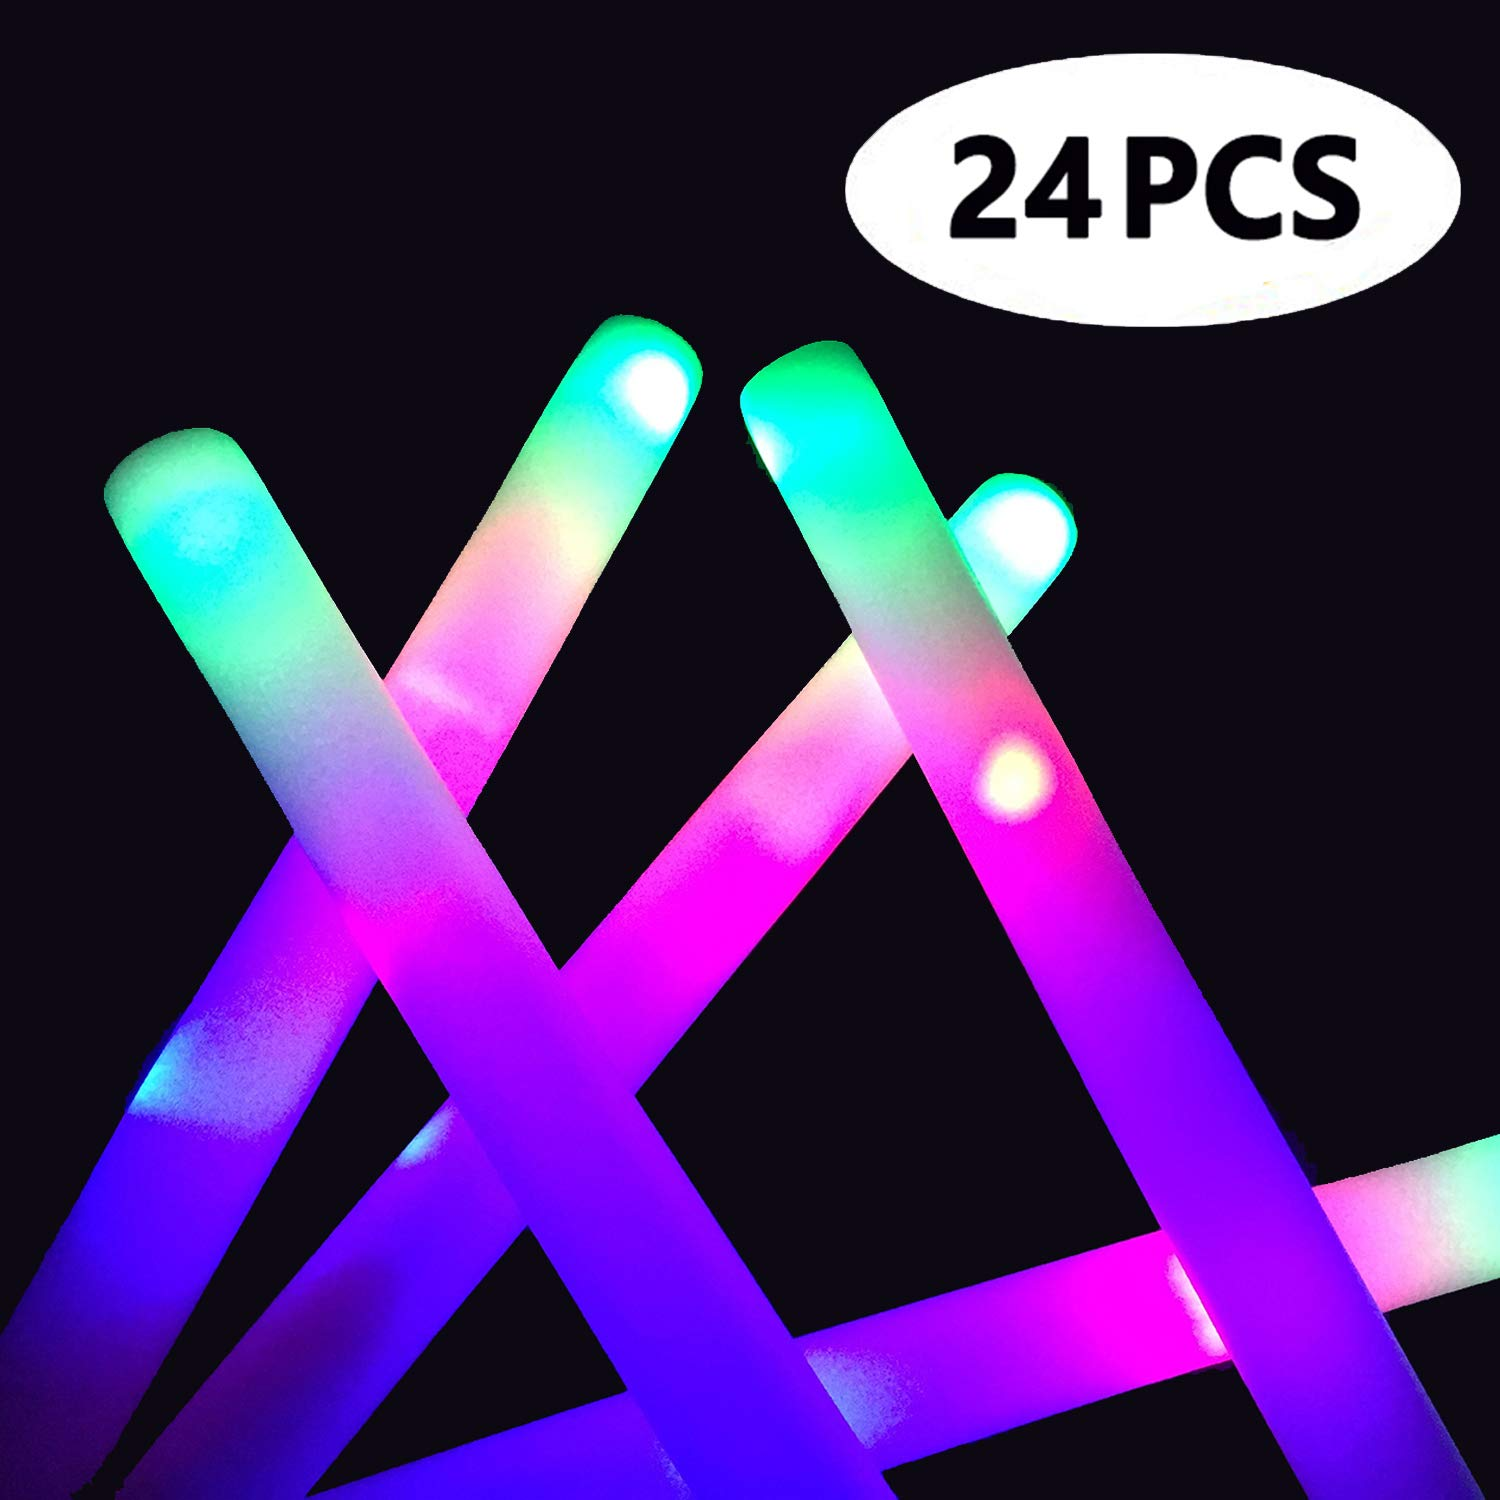 Glow Sticks Bulk - 24 Pcs LED Foam Sticks Glow Batons with 3 Modes Flashing Effect, Glow in The Dark Party Supplies by ColorHome by ColorHome (Image #1)